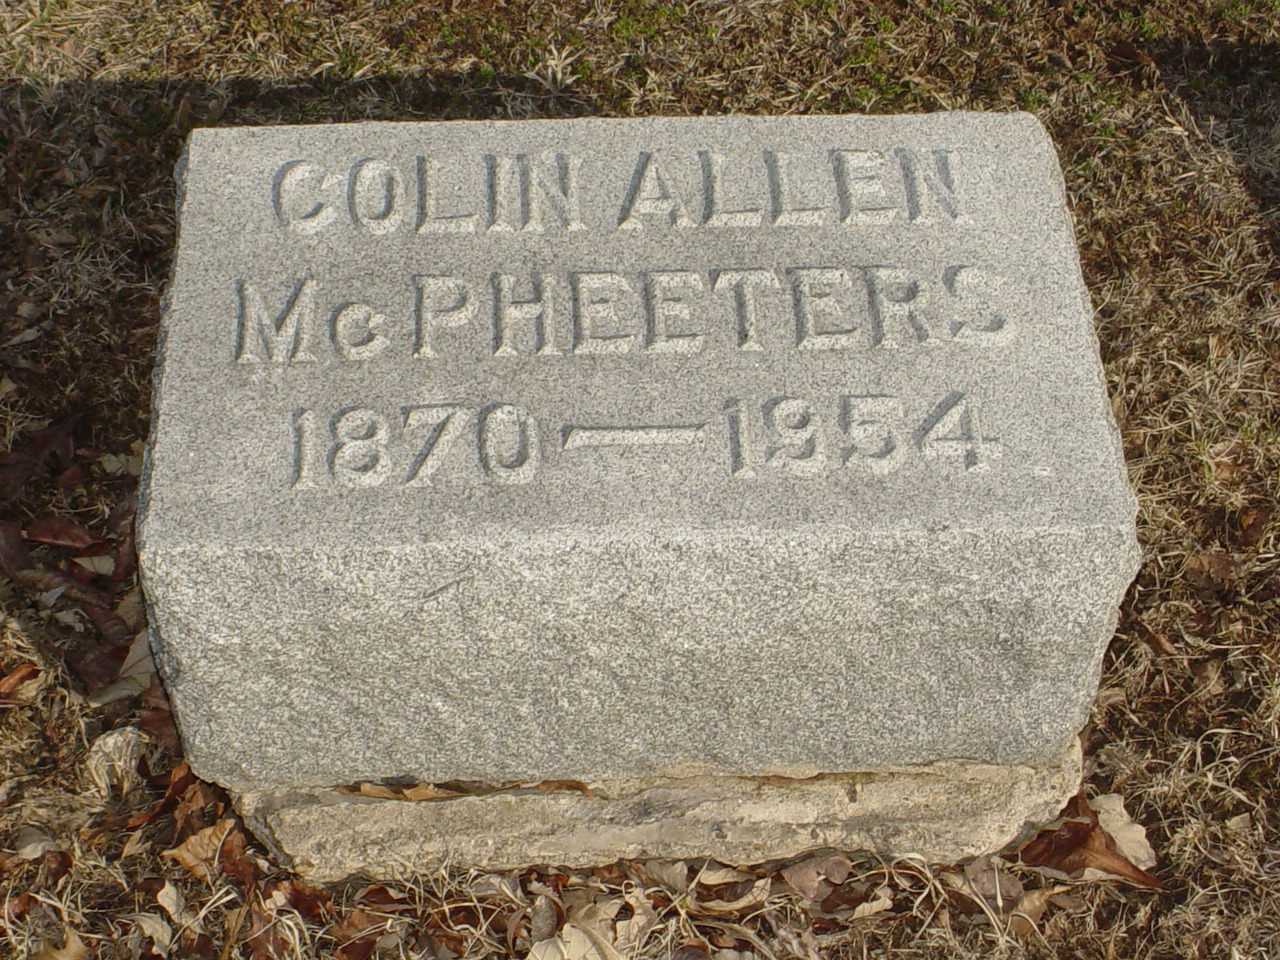 Colin Allen McPheeters Headstone Photo, Hillcrest Cemetery, Callaway County genealogy